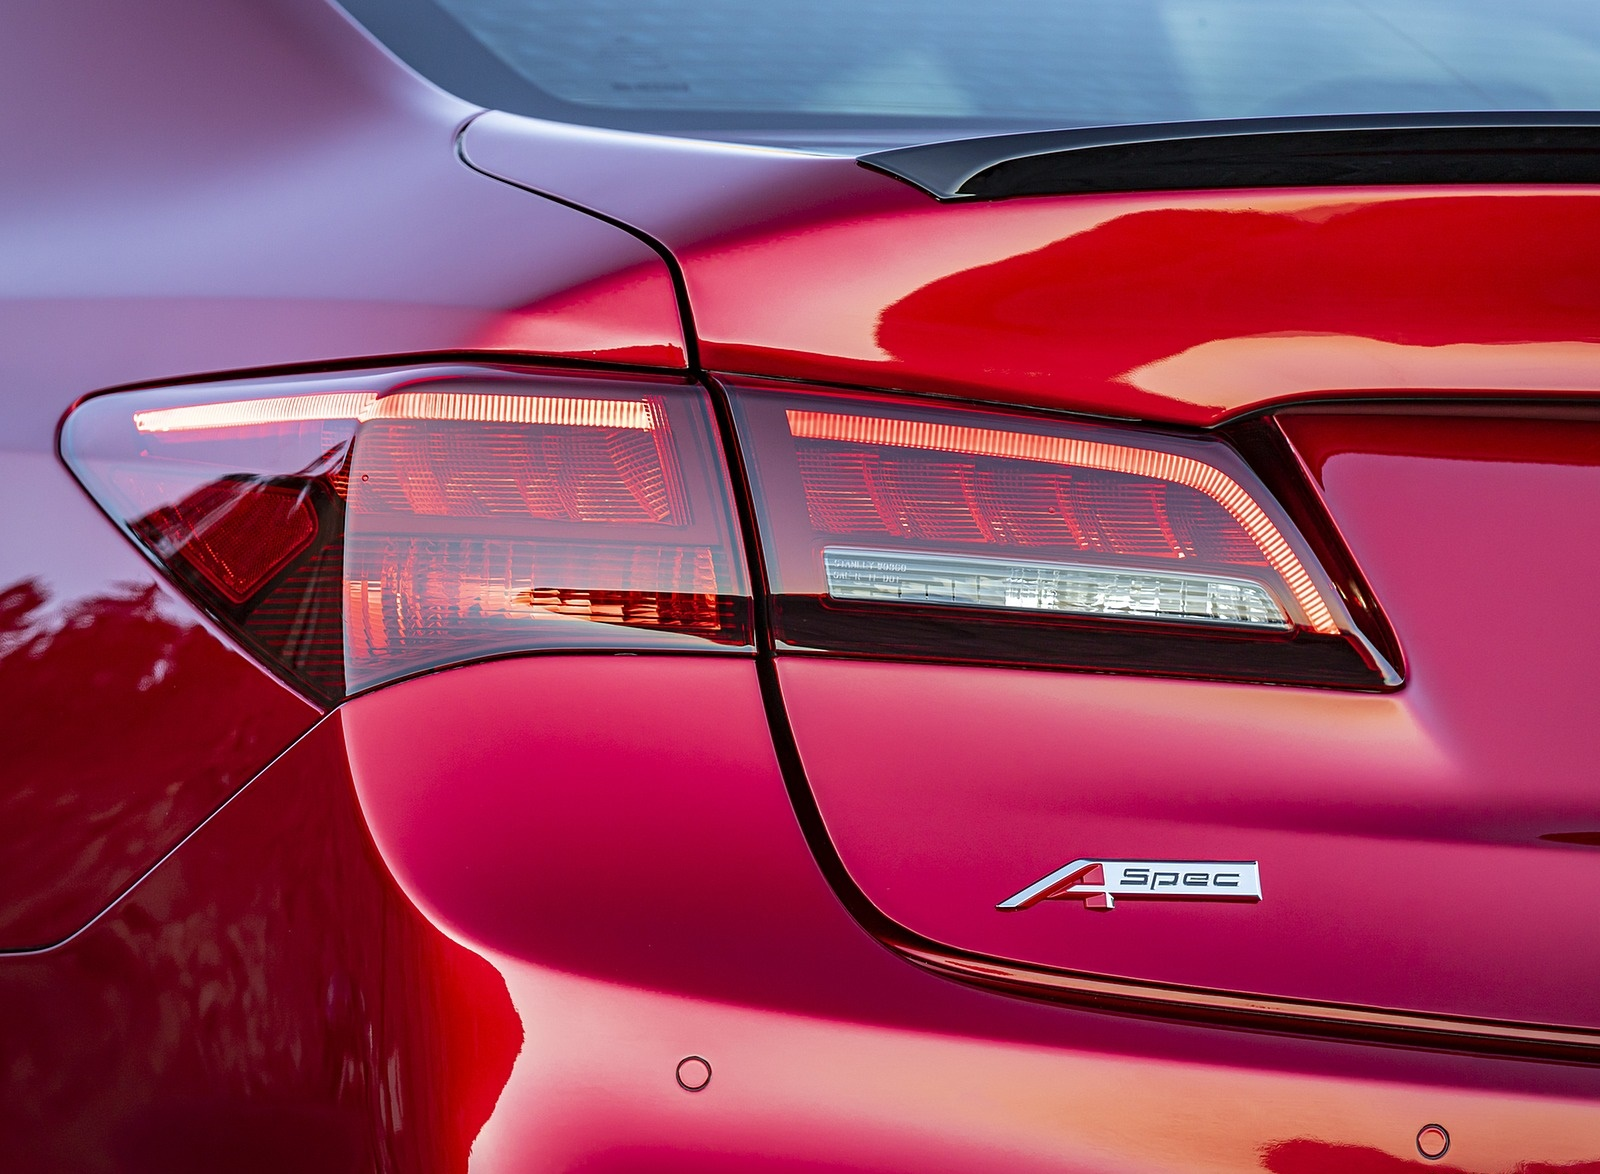 2020 Acura TLX PMC Edition Tail Light Wallpapers (11)